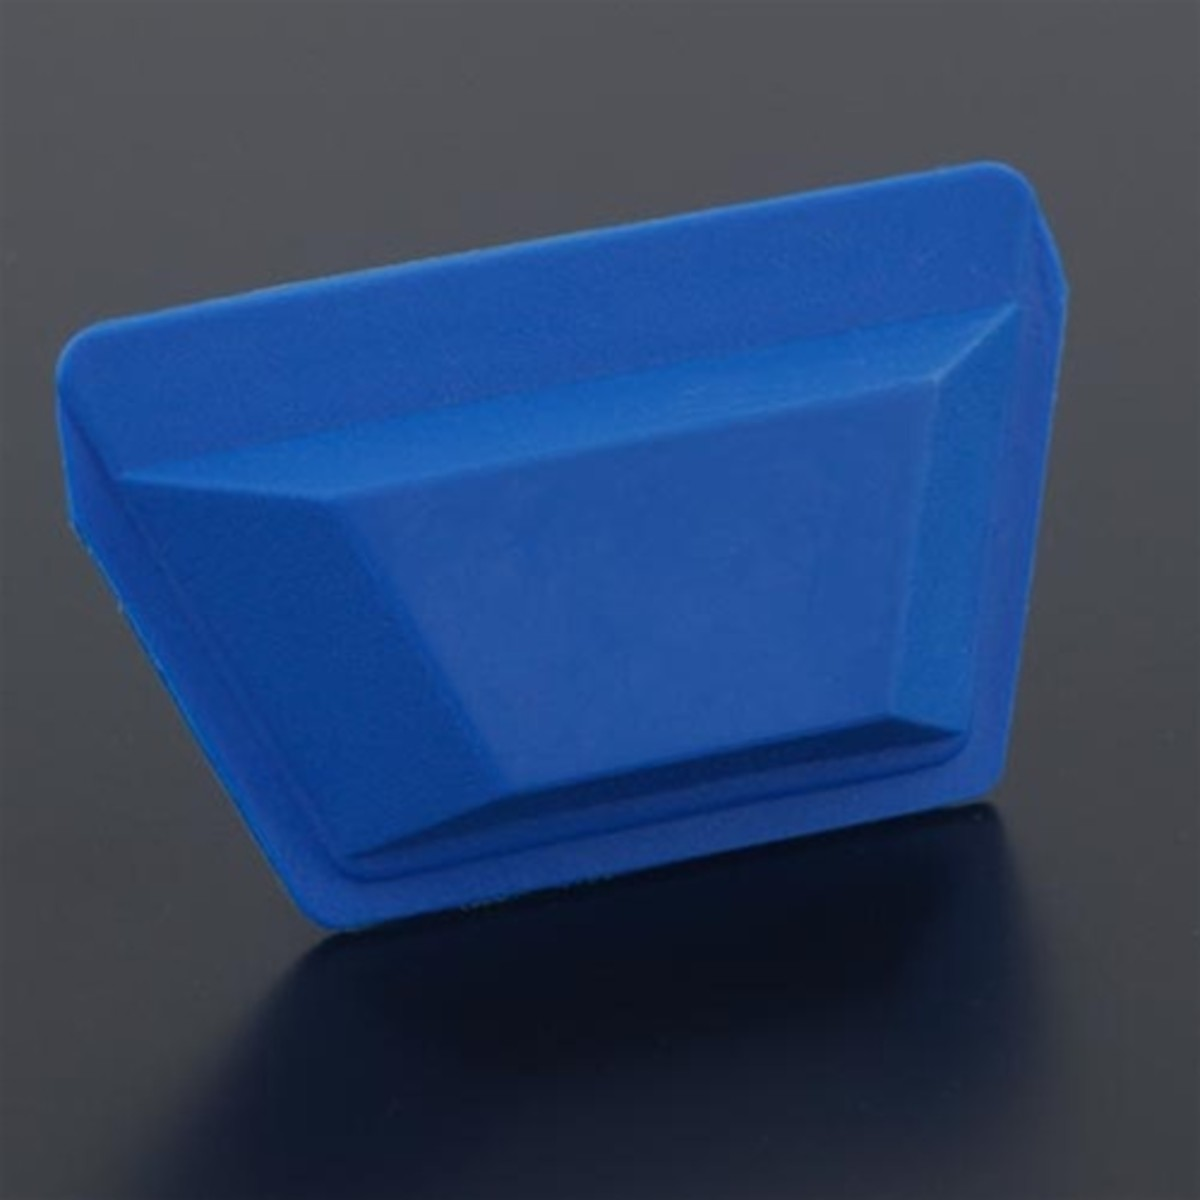 A flexible metal clay storage pouch that can be opened with one hand.